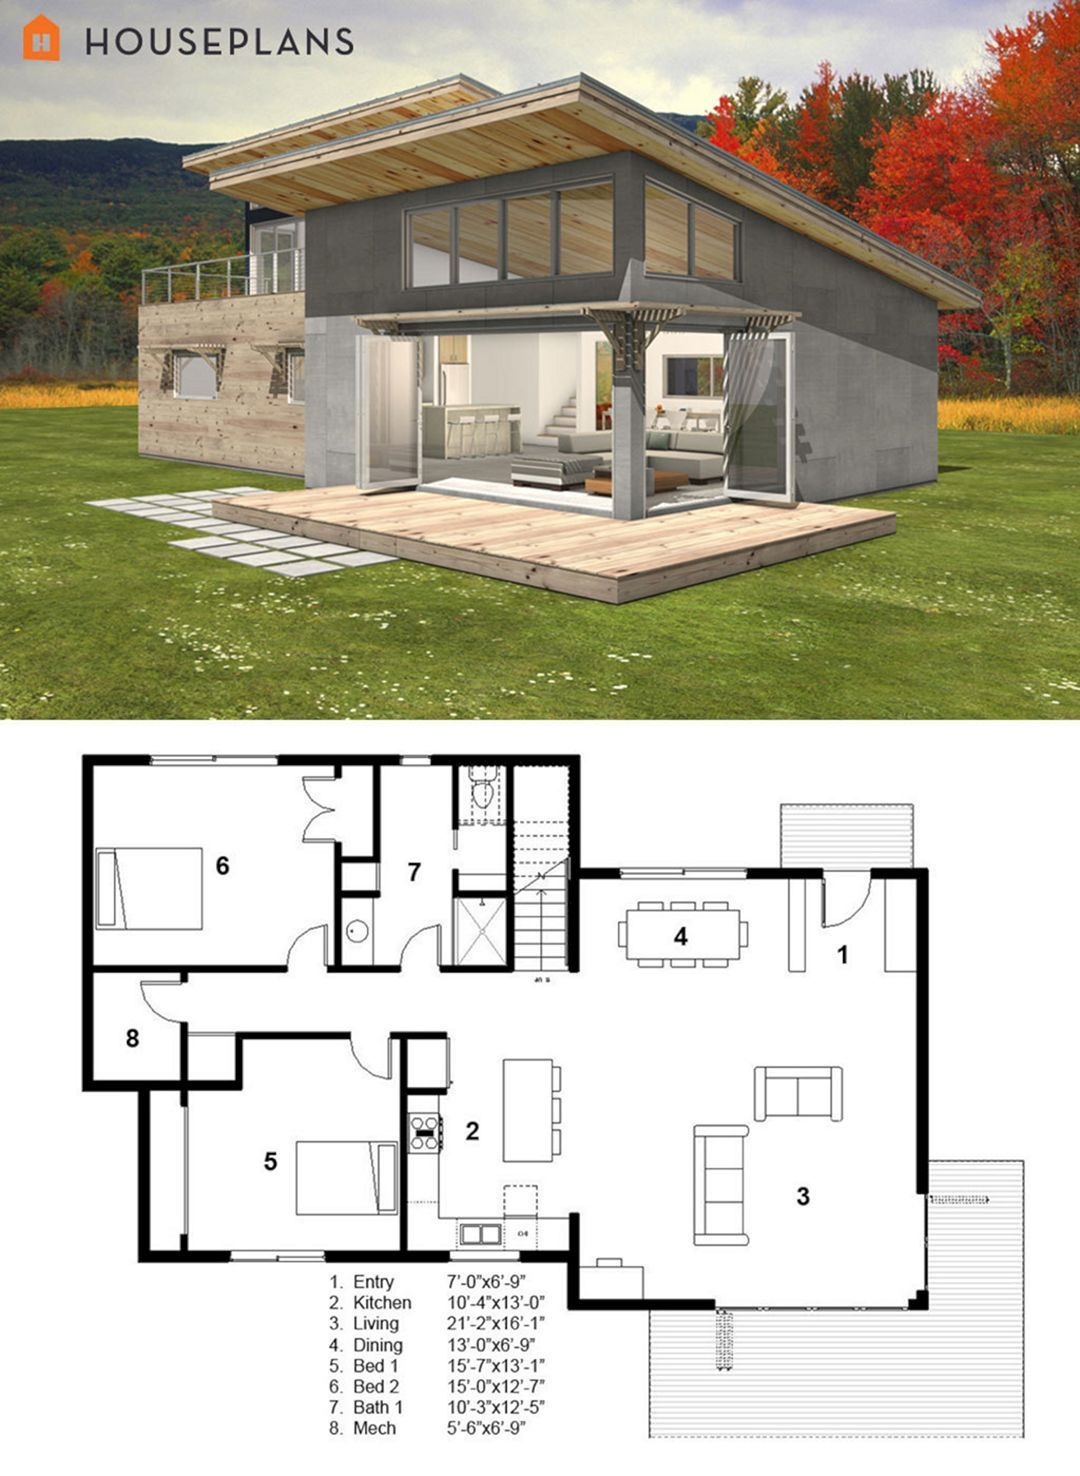 House Plans for Cabins and Small Houses Unique the Best Modern Tiny House Design Small Homes Inspirations